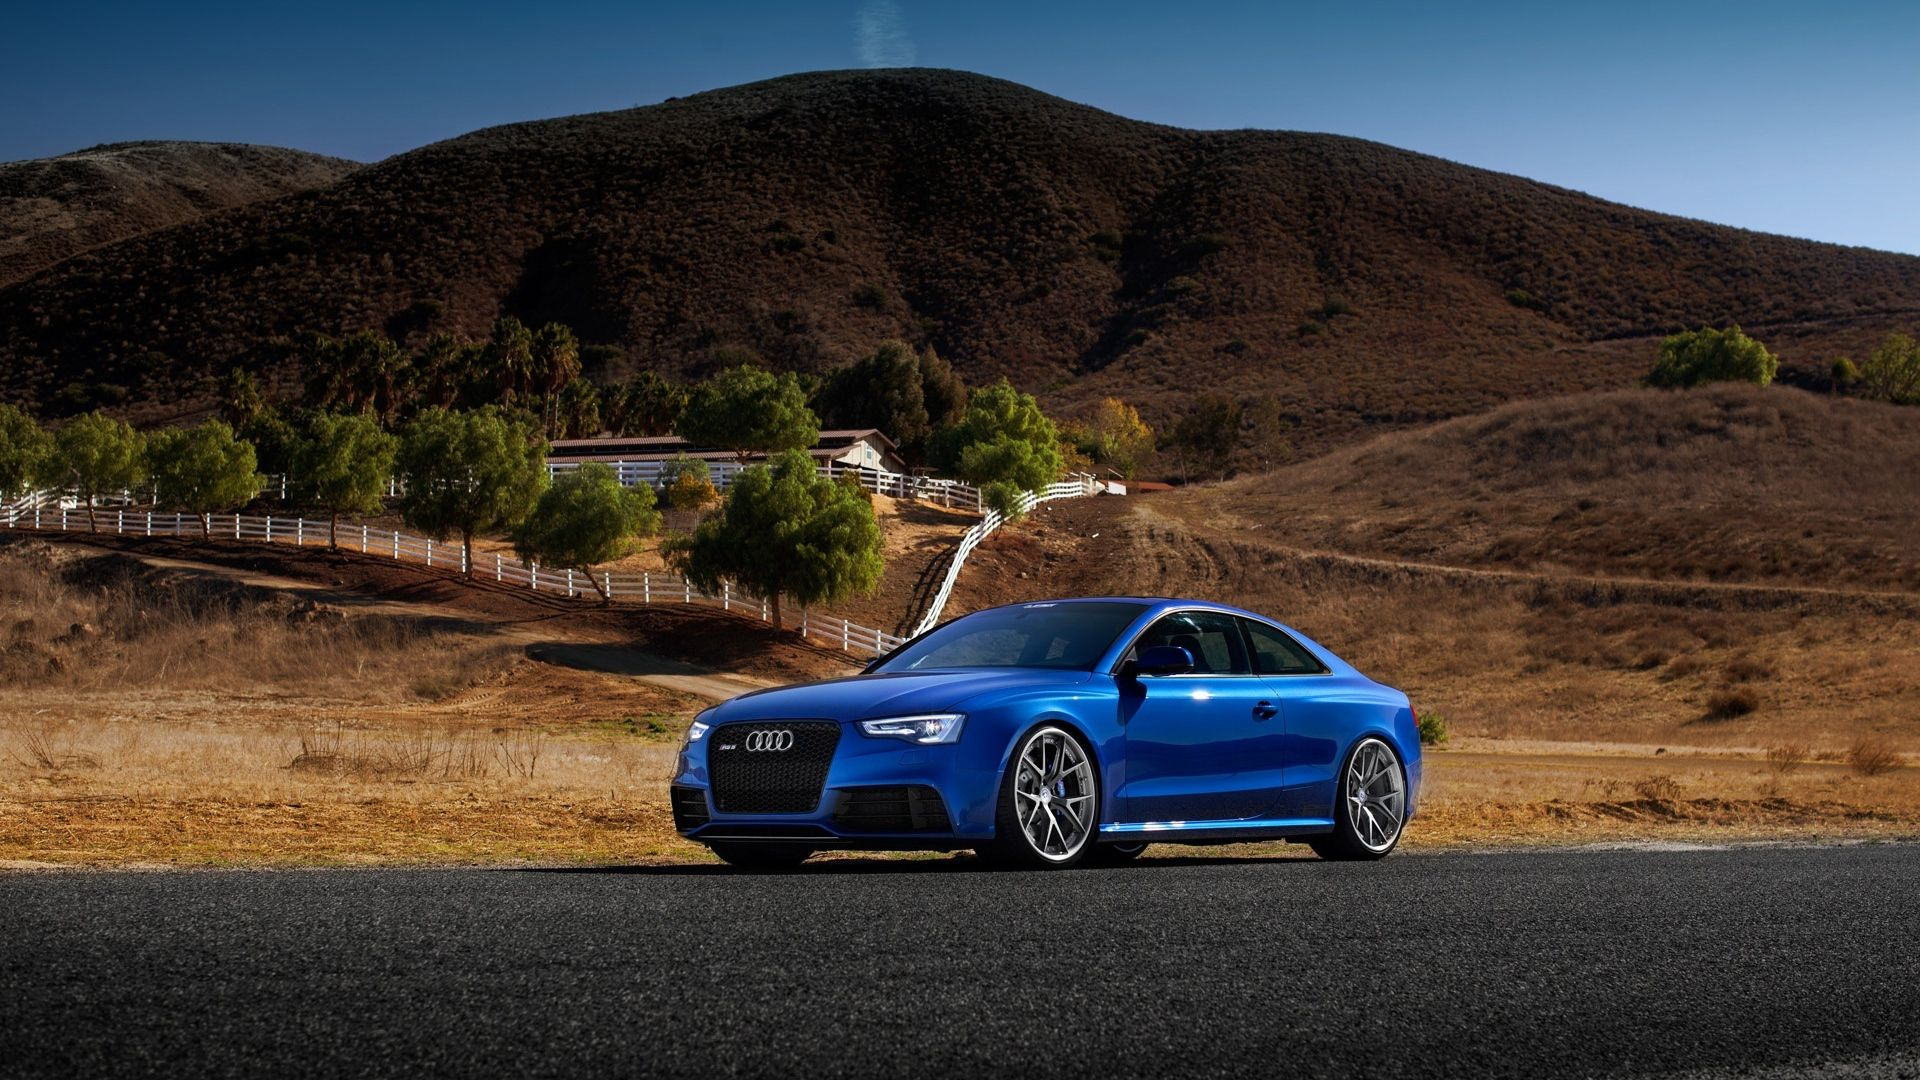 1920x1080 Wallpaper Audi Rs5 Blue Side View Blue Audi Audi Hd Wallpapers Of Cars